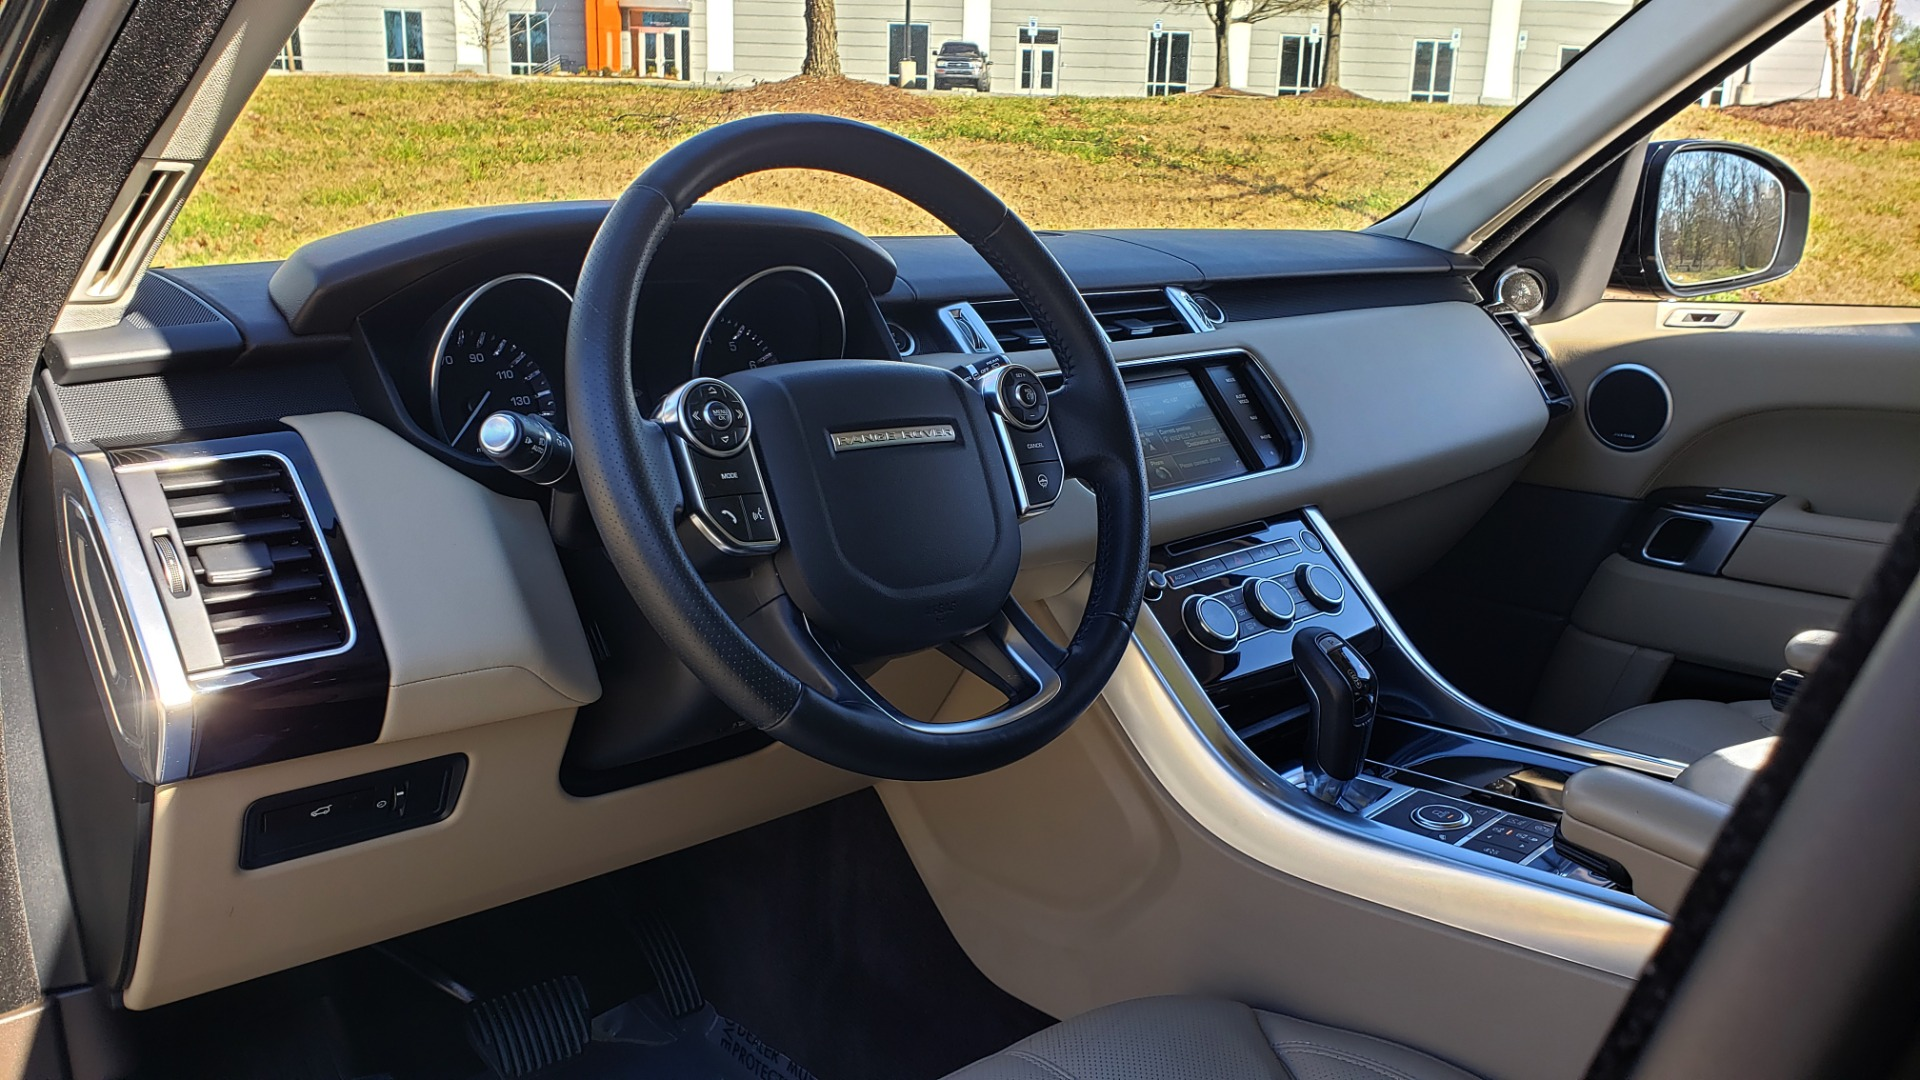 Used 2015 Land Rover RANGE ROVER HSE / 3.0L SC V6 / 8-SPD AUTO / NAV / PANO ROOF / REARVIEW for sale Sold at Formula Imports in Charlotte NC 28227 44